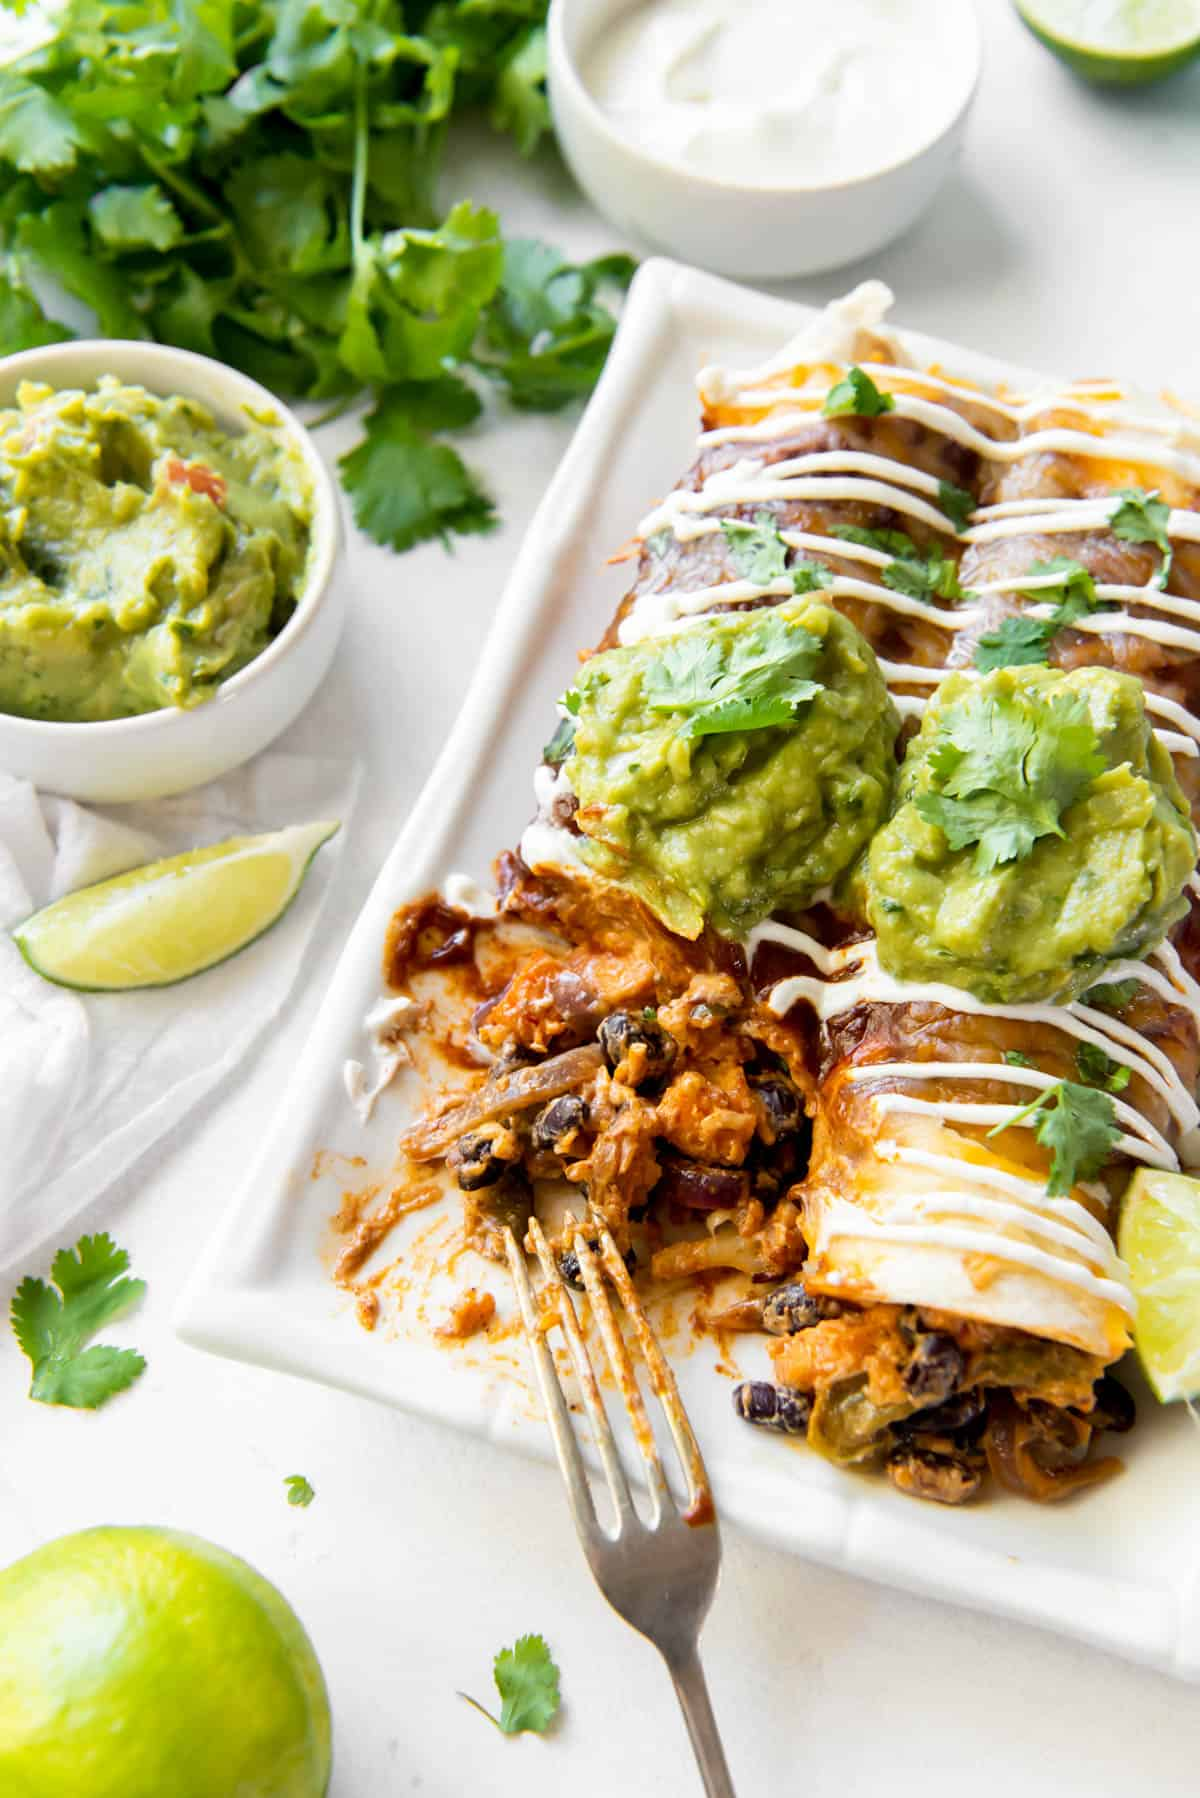 A plate with two enchiladas stuffed with veggies and beans, topped with avocado and sour cream.